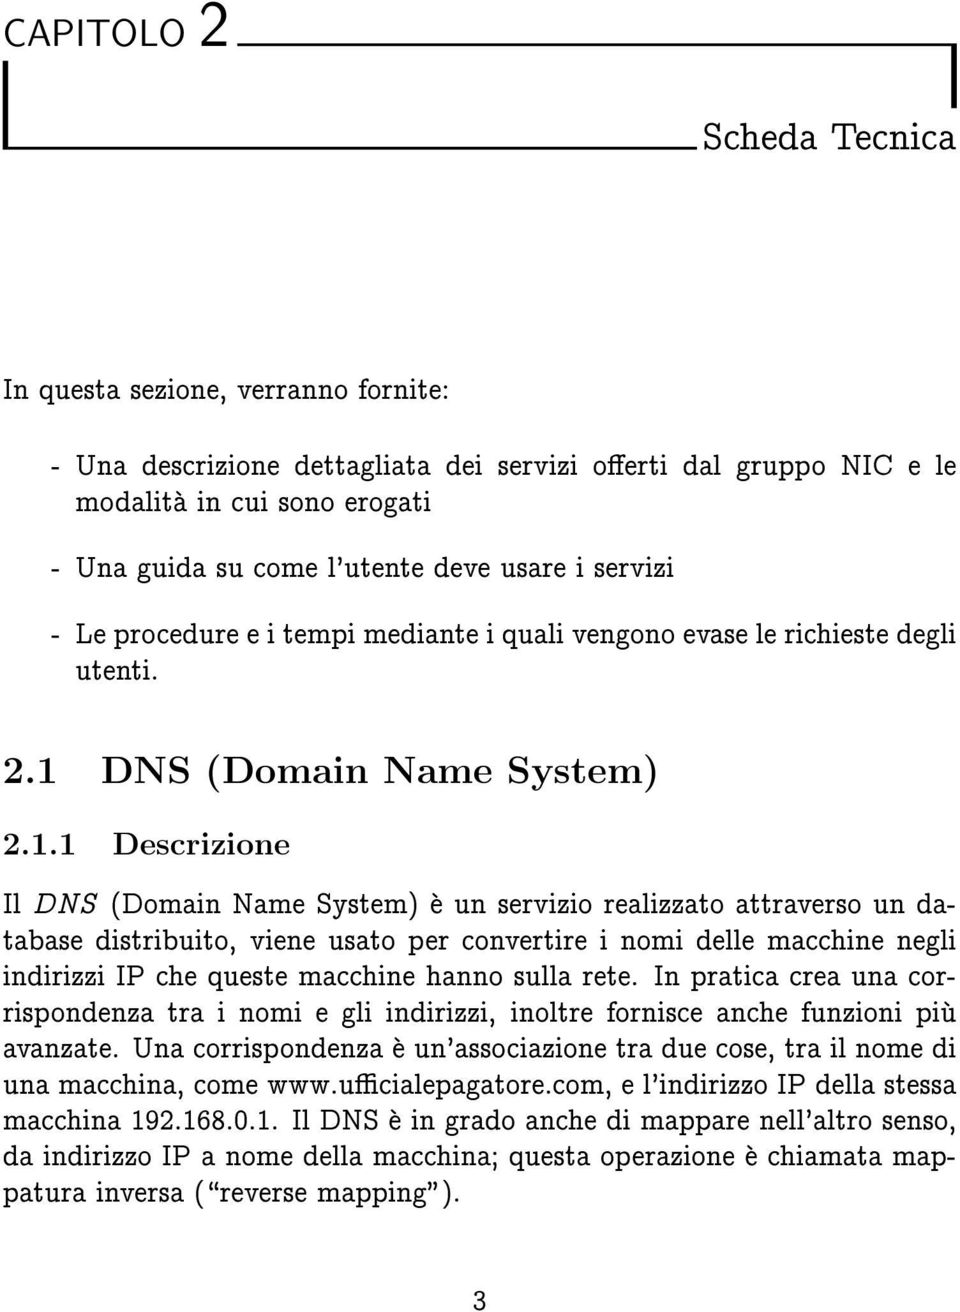 DNS (Domain Name System) 2.1.